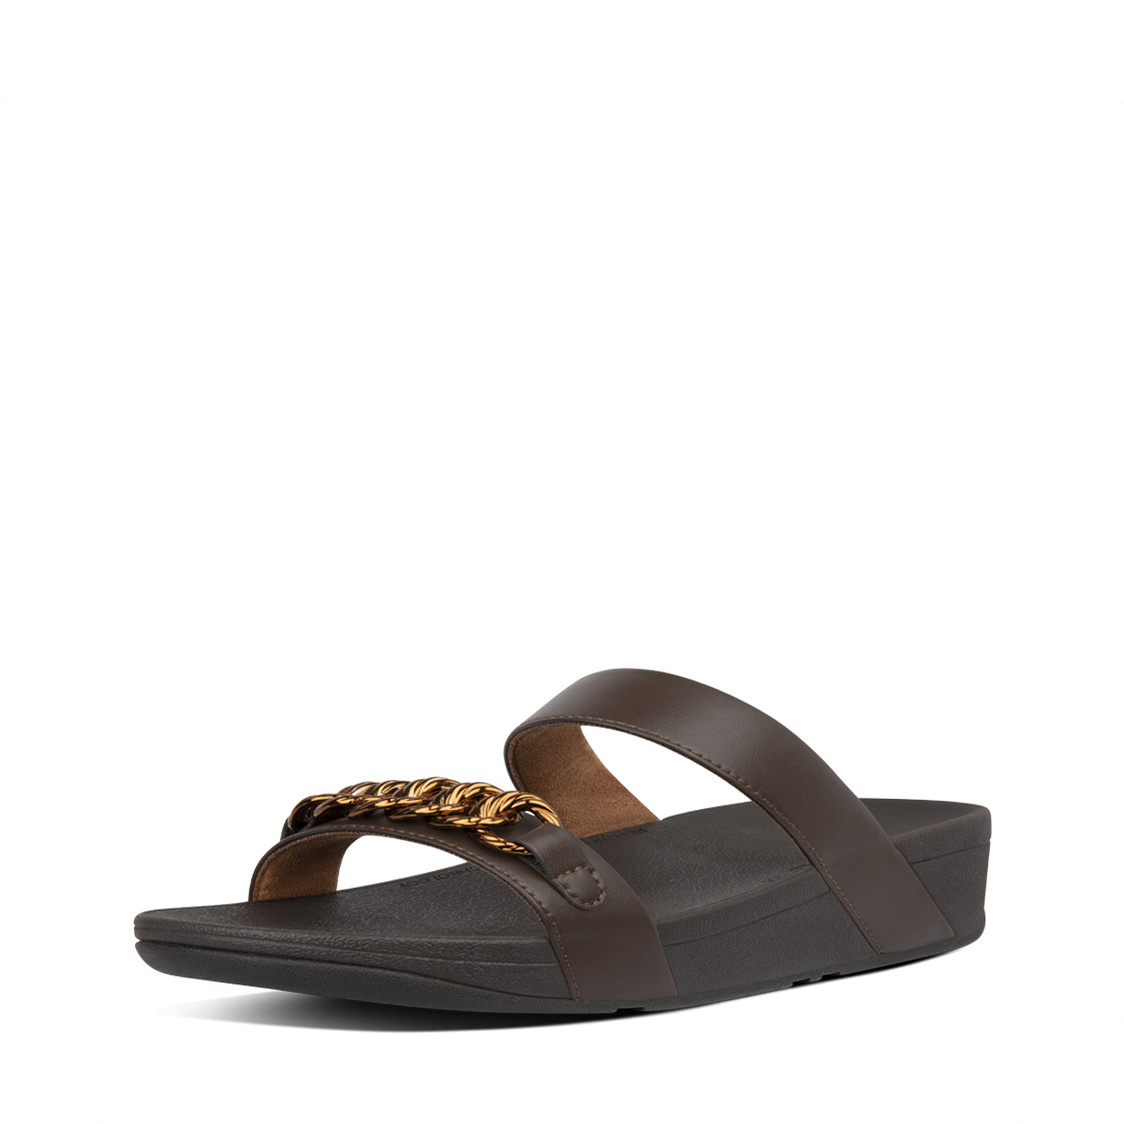 Fitflop Lottie Chain Slides Chocolate Brown